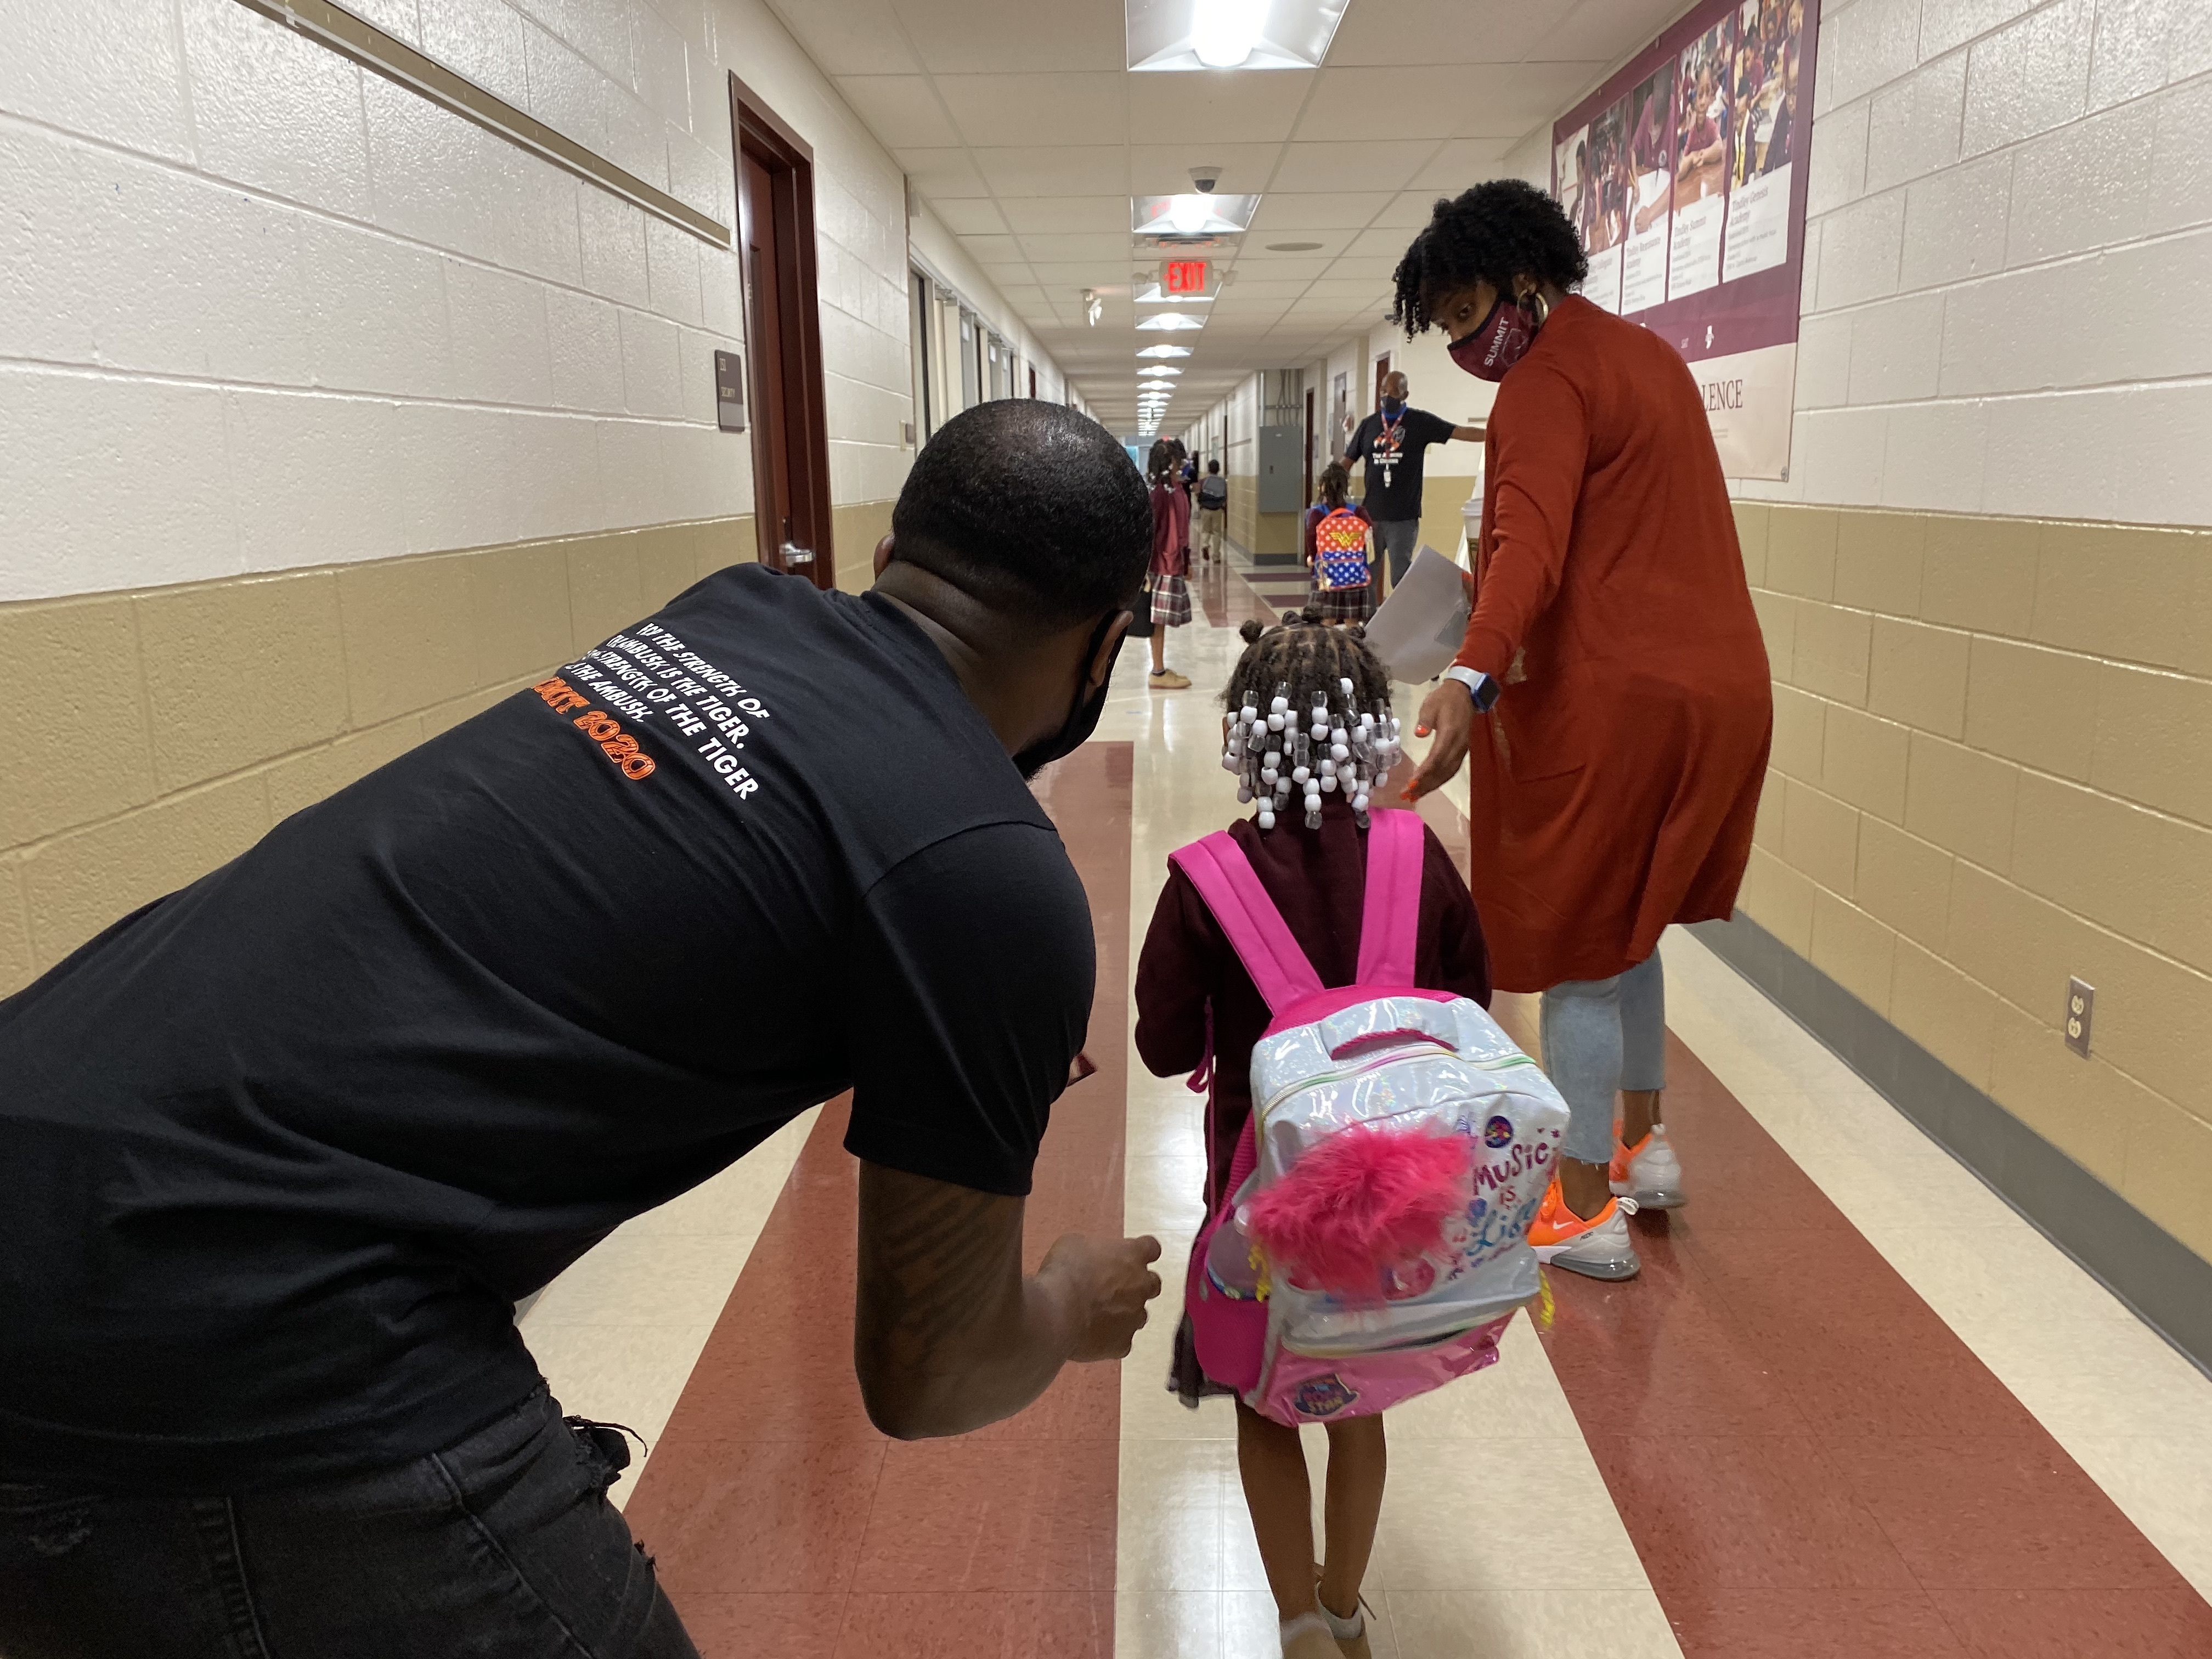 A masked woman in a long orange sweater guides a child carrying a pink backpack down a school hall, while a man in a black T-shirt bends down slightly behind the child.